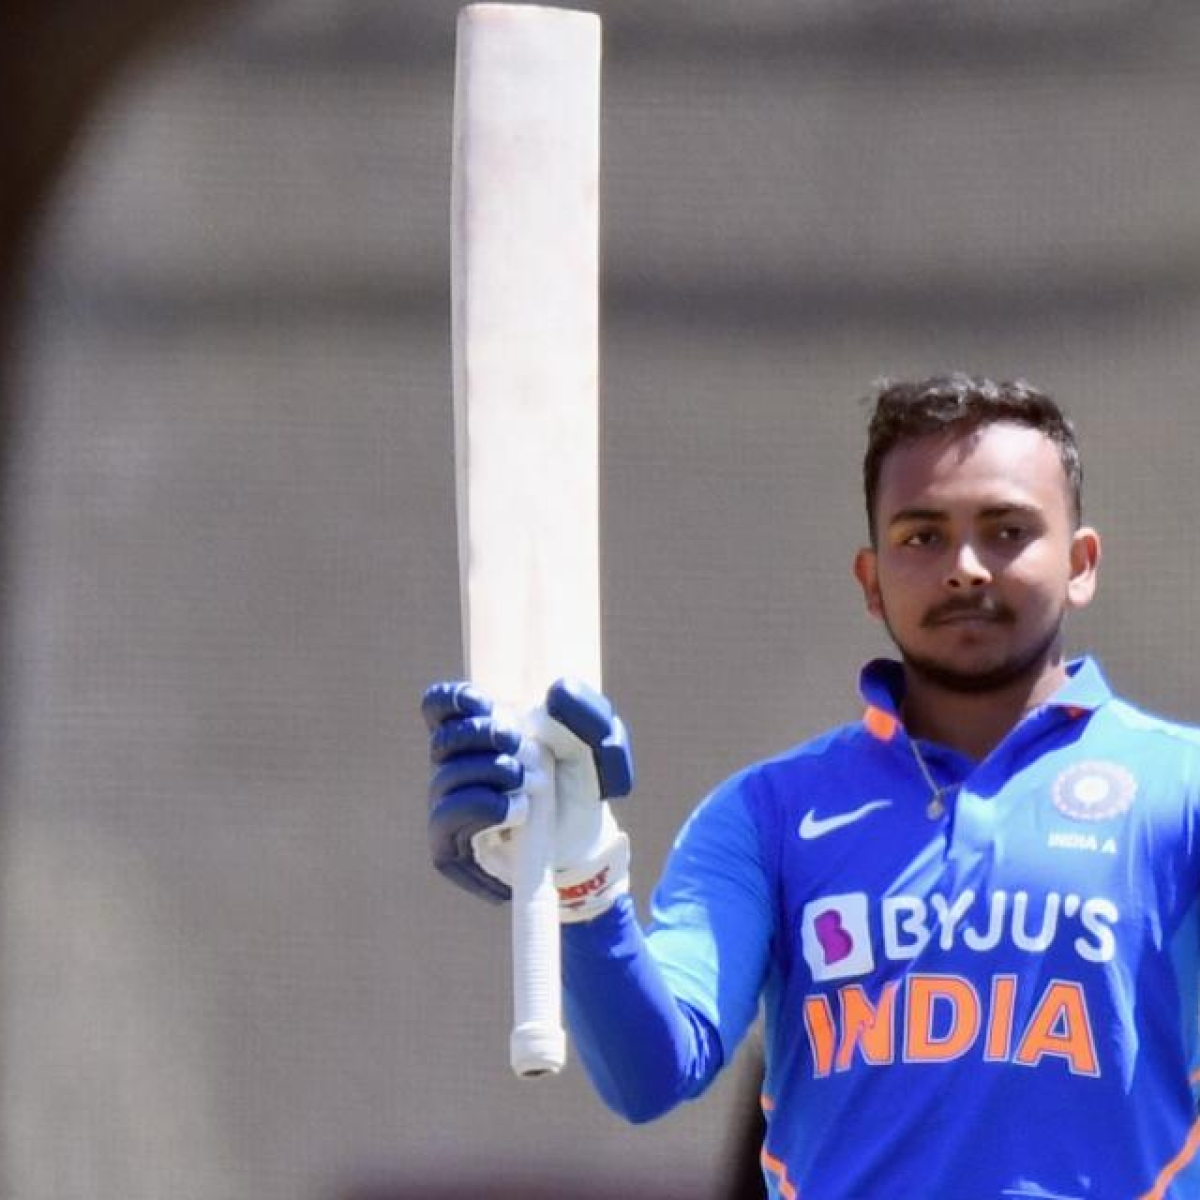 Maharashtra Police briefly stopped Prithvi Shaw when he was en route to Goa for vacation - Here's why